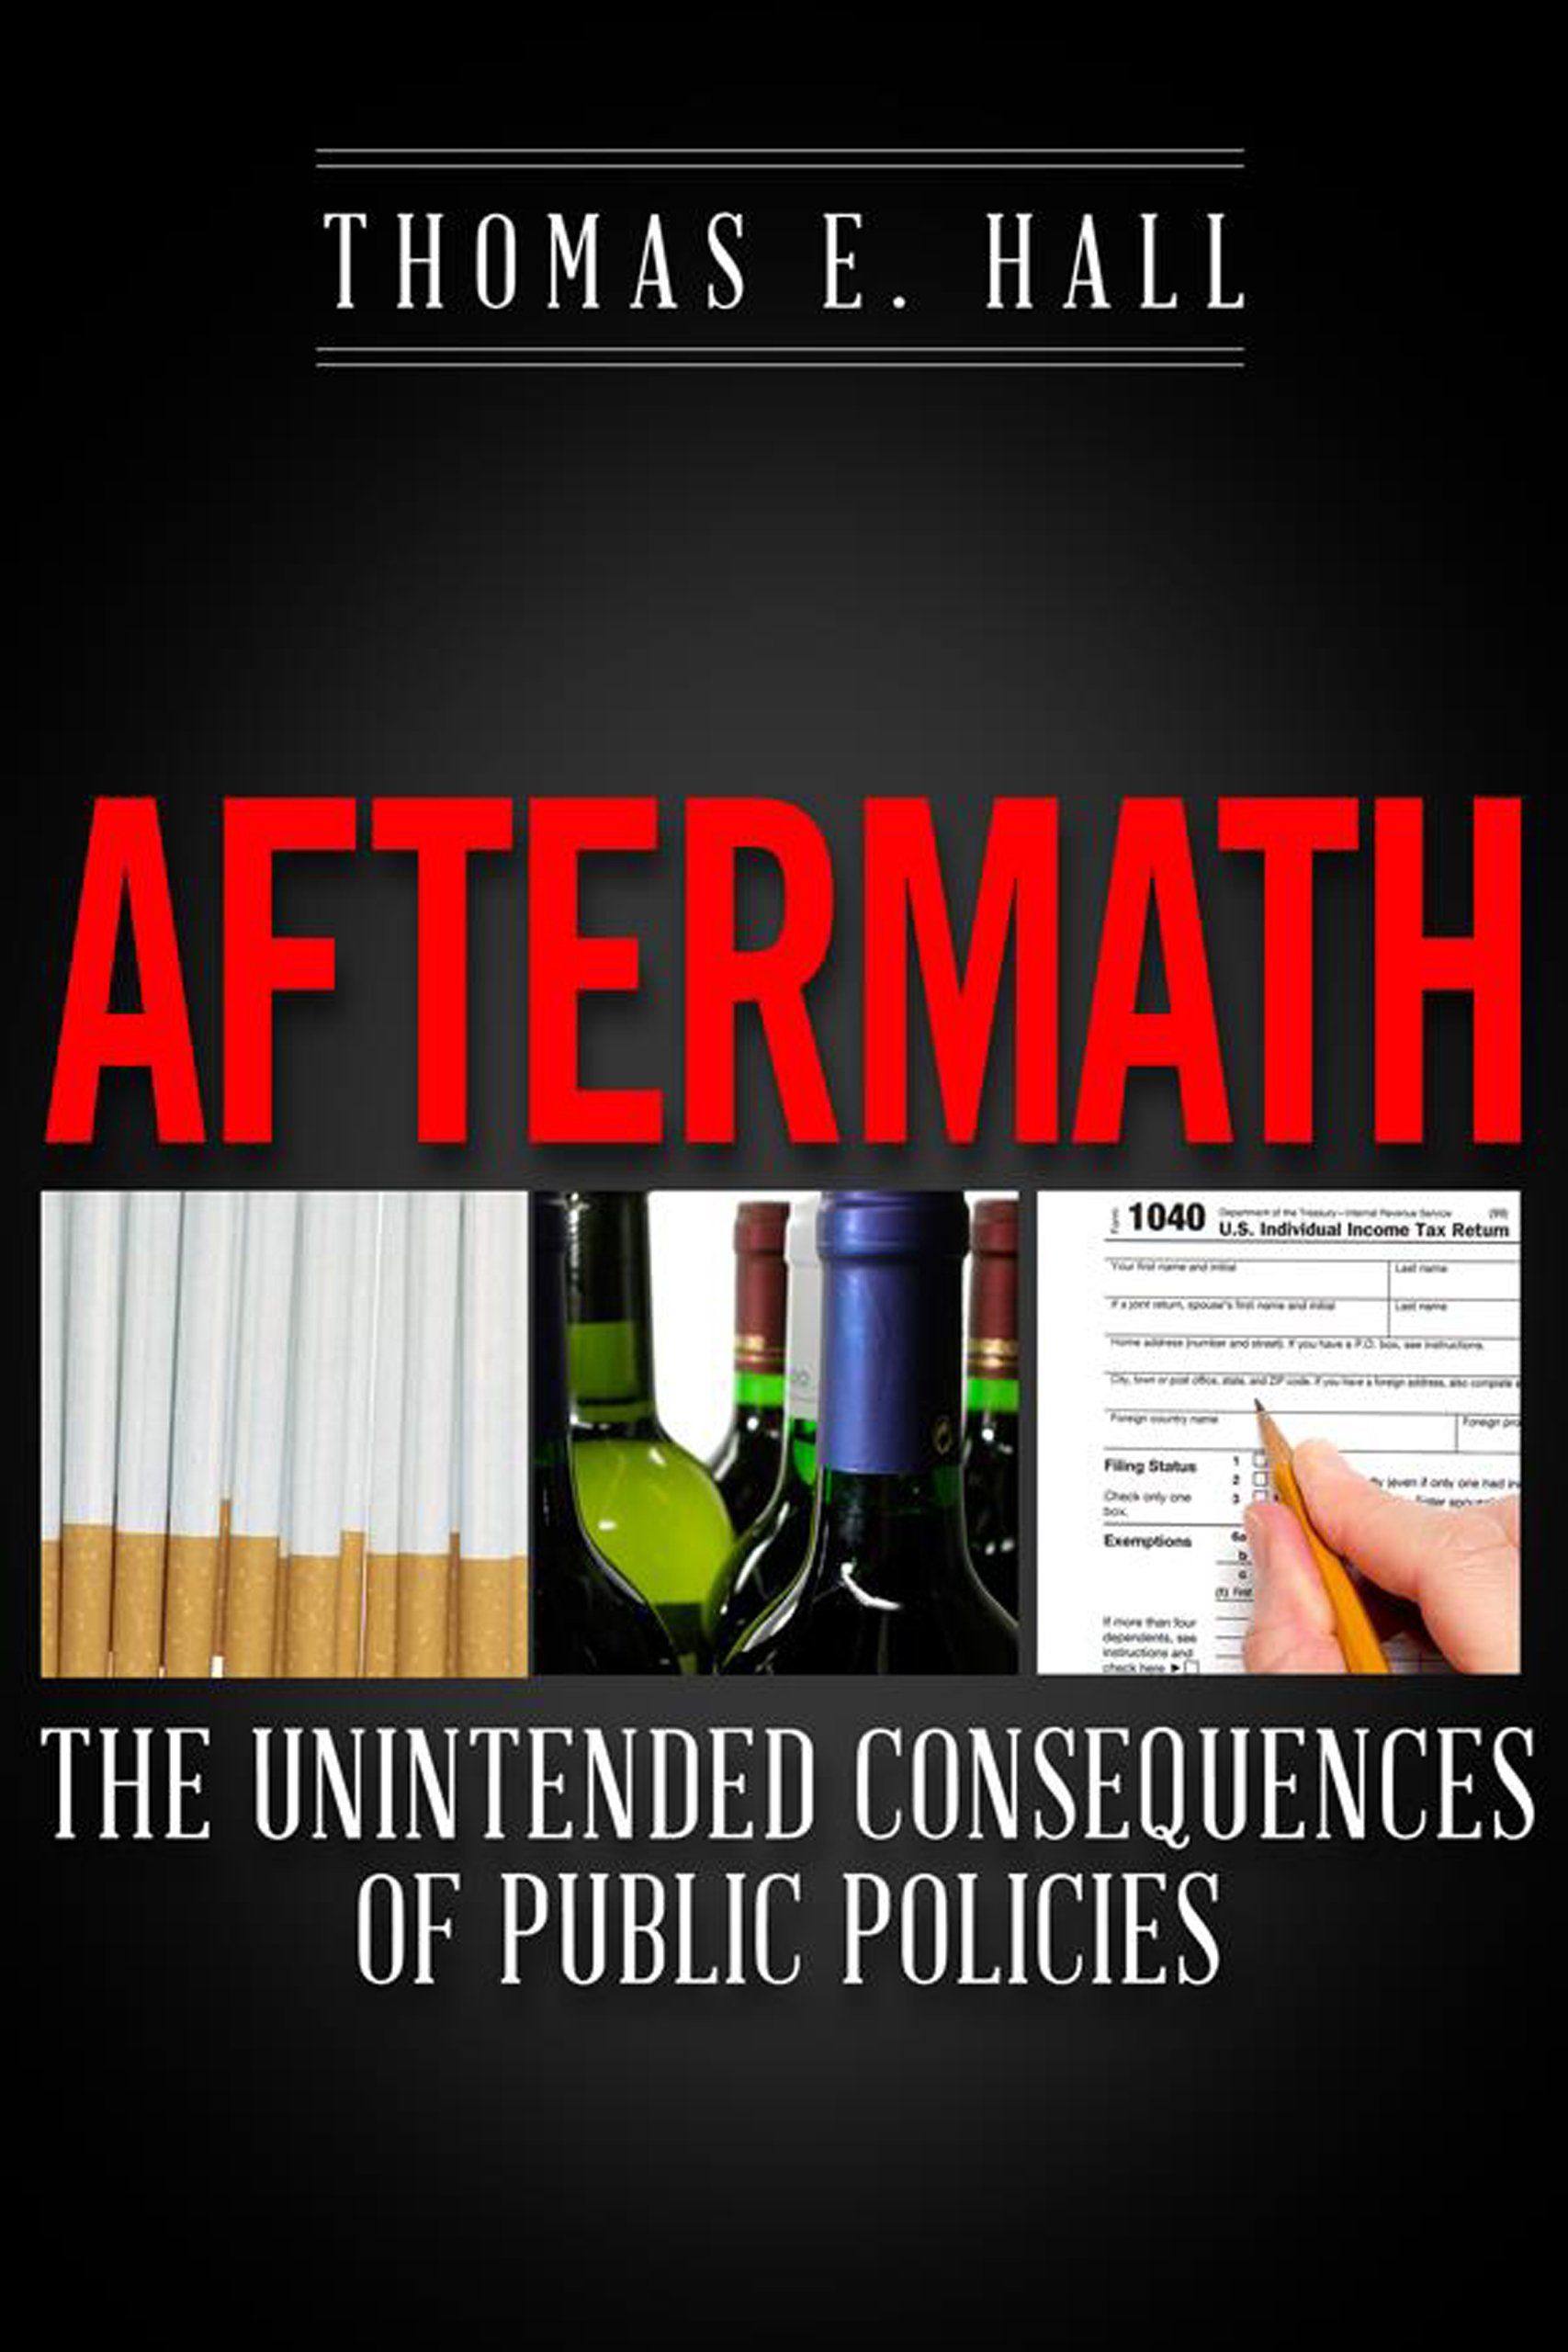 Hall – Aftermath: The Unintended Consequences of Public Policies